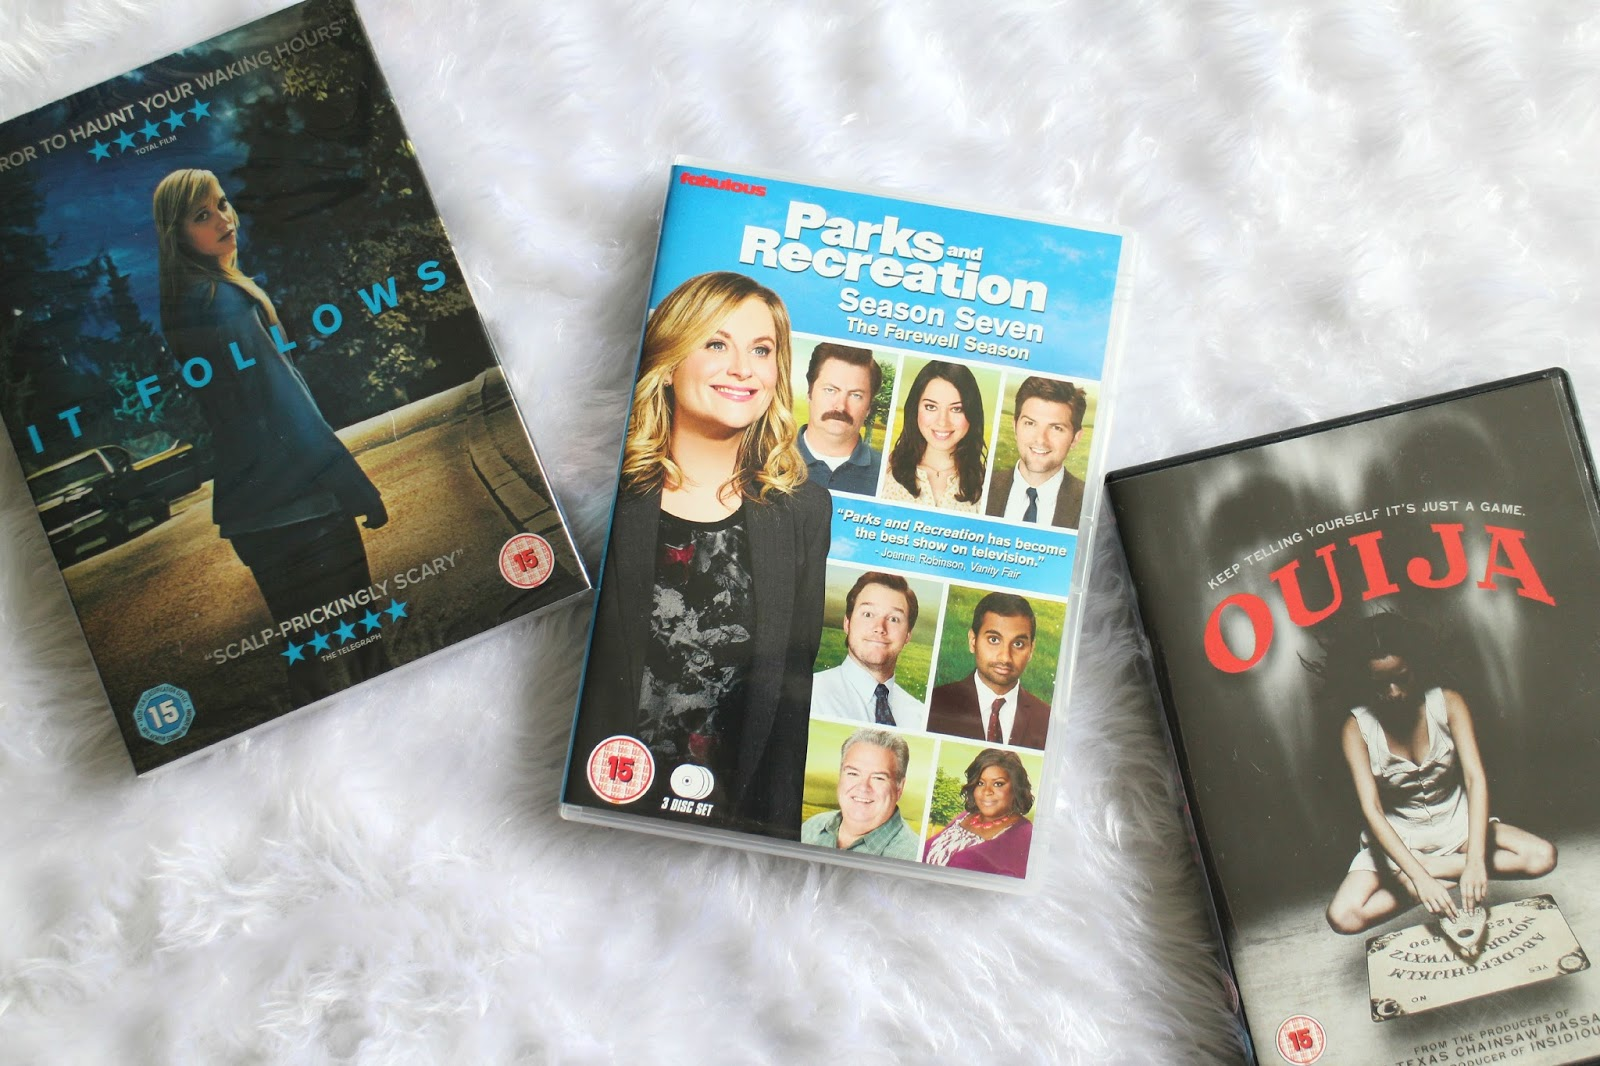 Amazon DVD Haul 2015